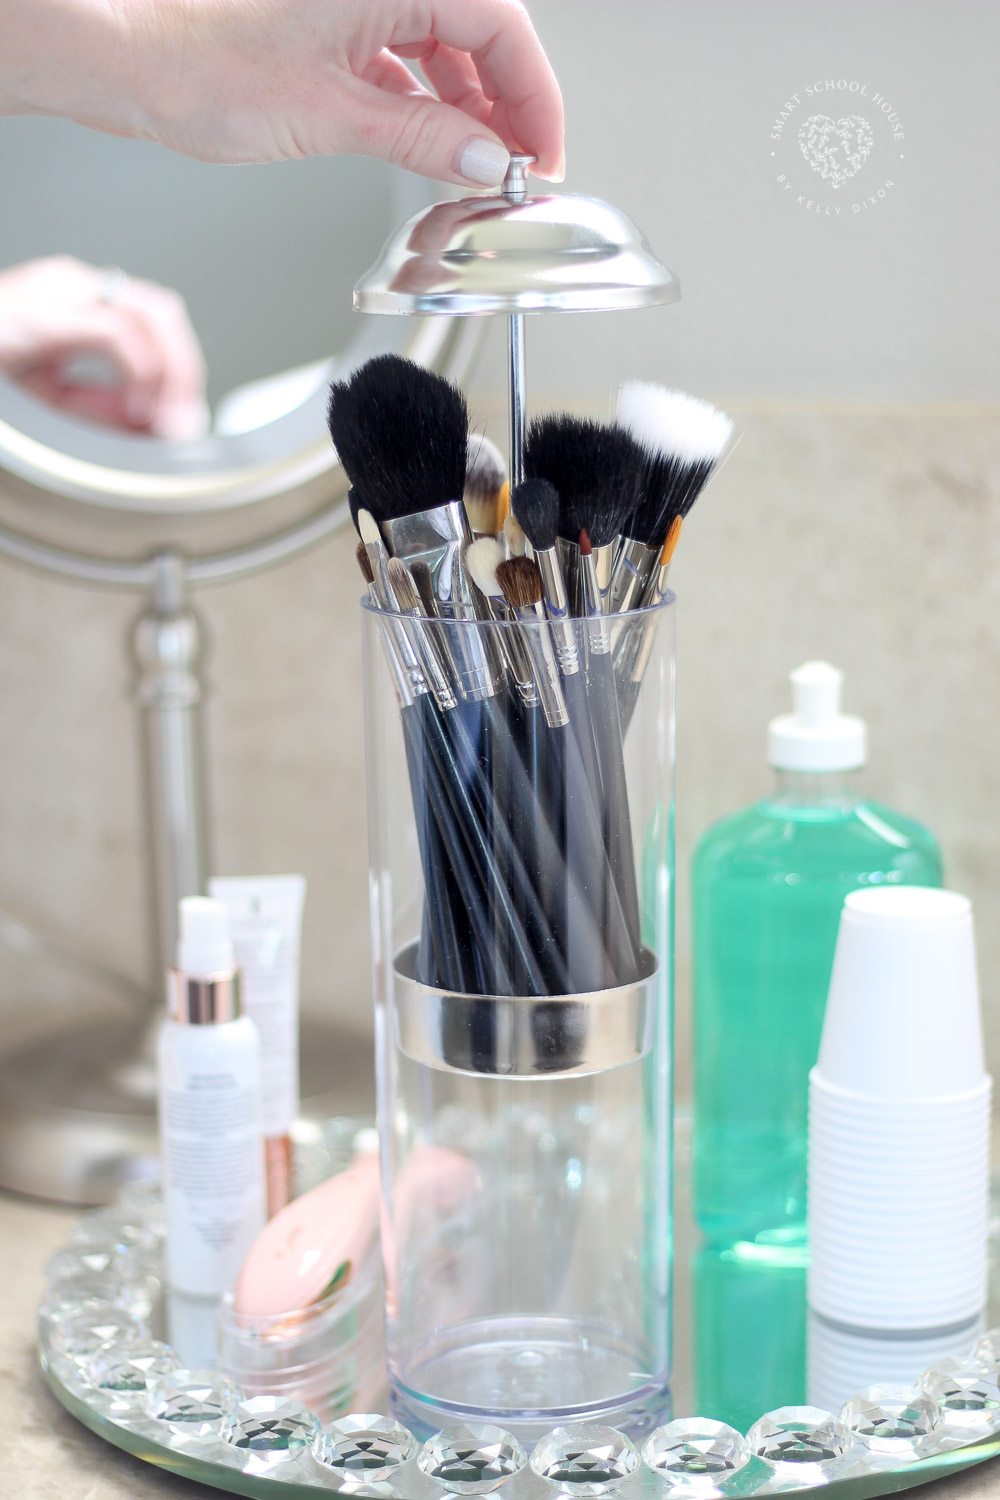 Organization and Tidy Tips - Use a straw dispenser to organize and store makeup brushes. Brilliant and cute! More must-see tips here #MakeUpBrushes #BathroomOrganization #TidyTips #OrganizingTips